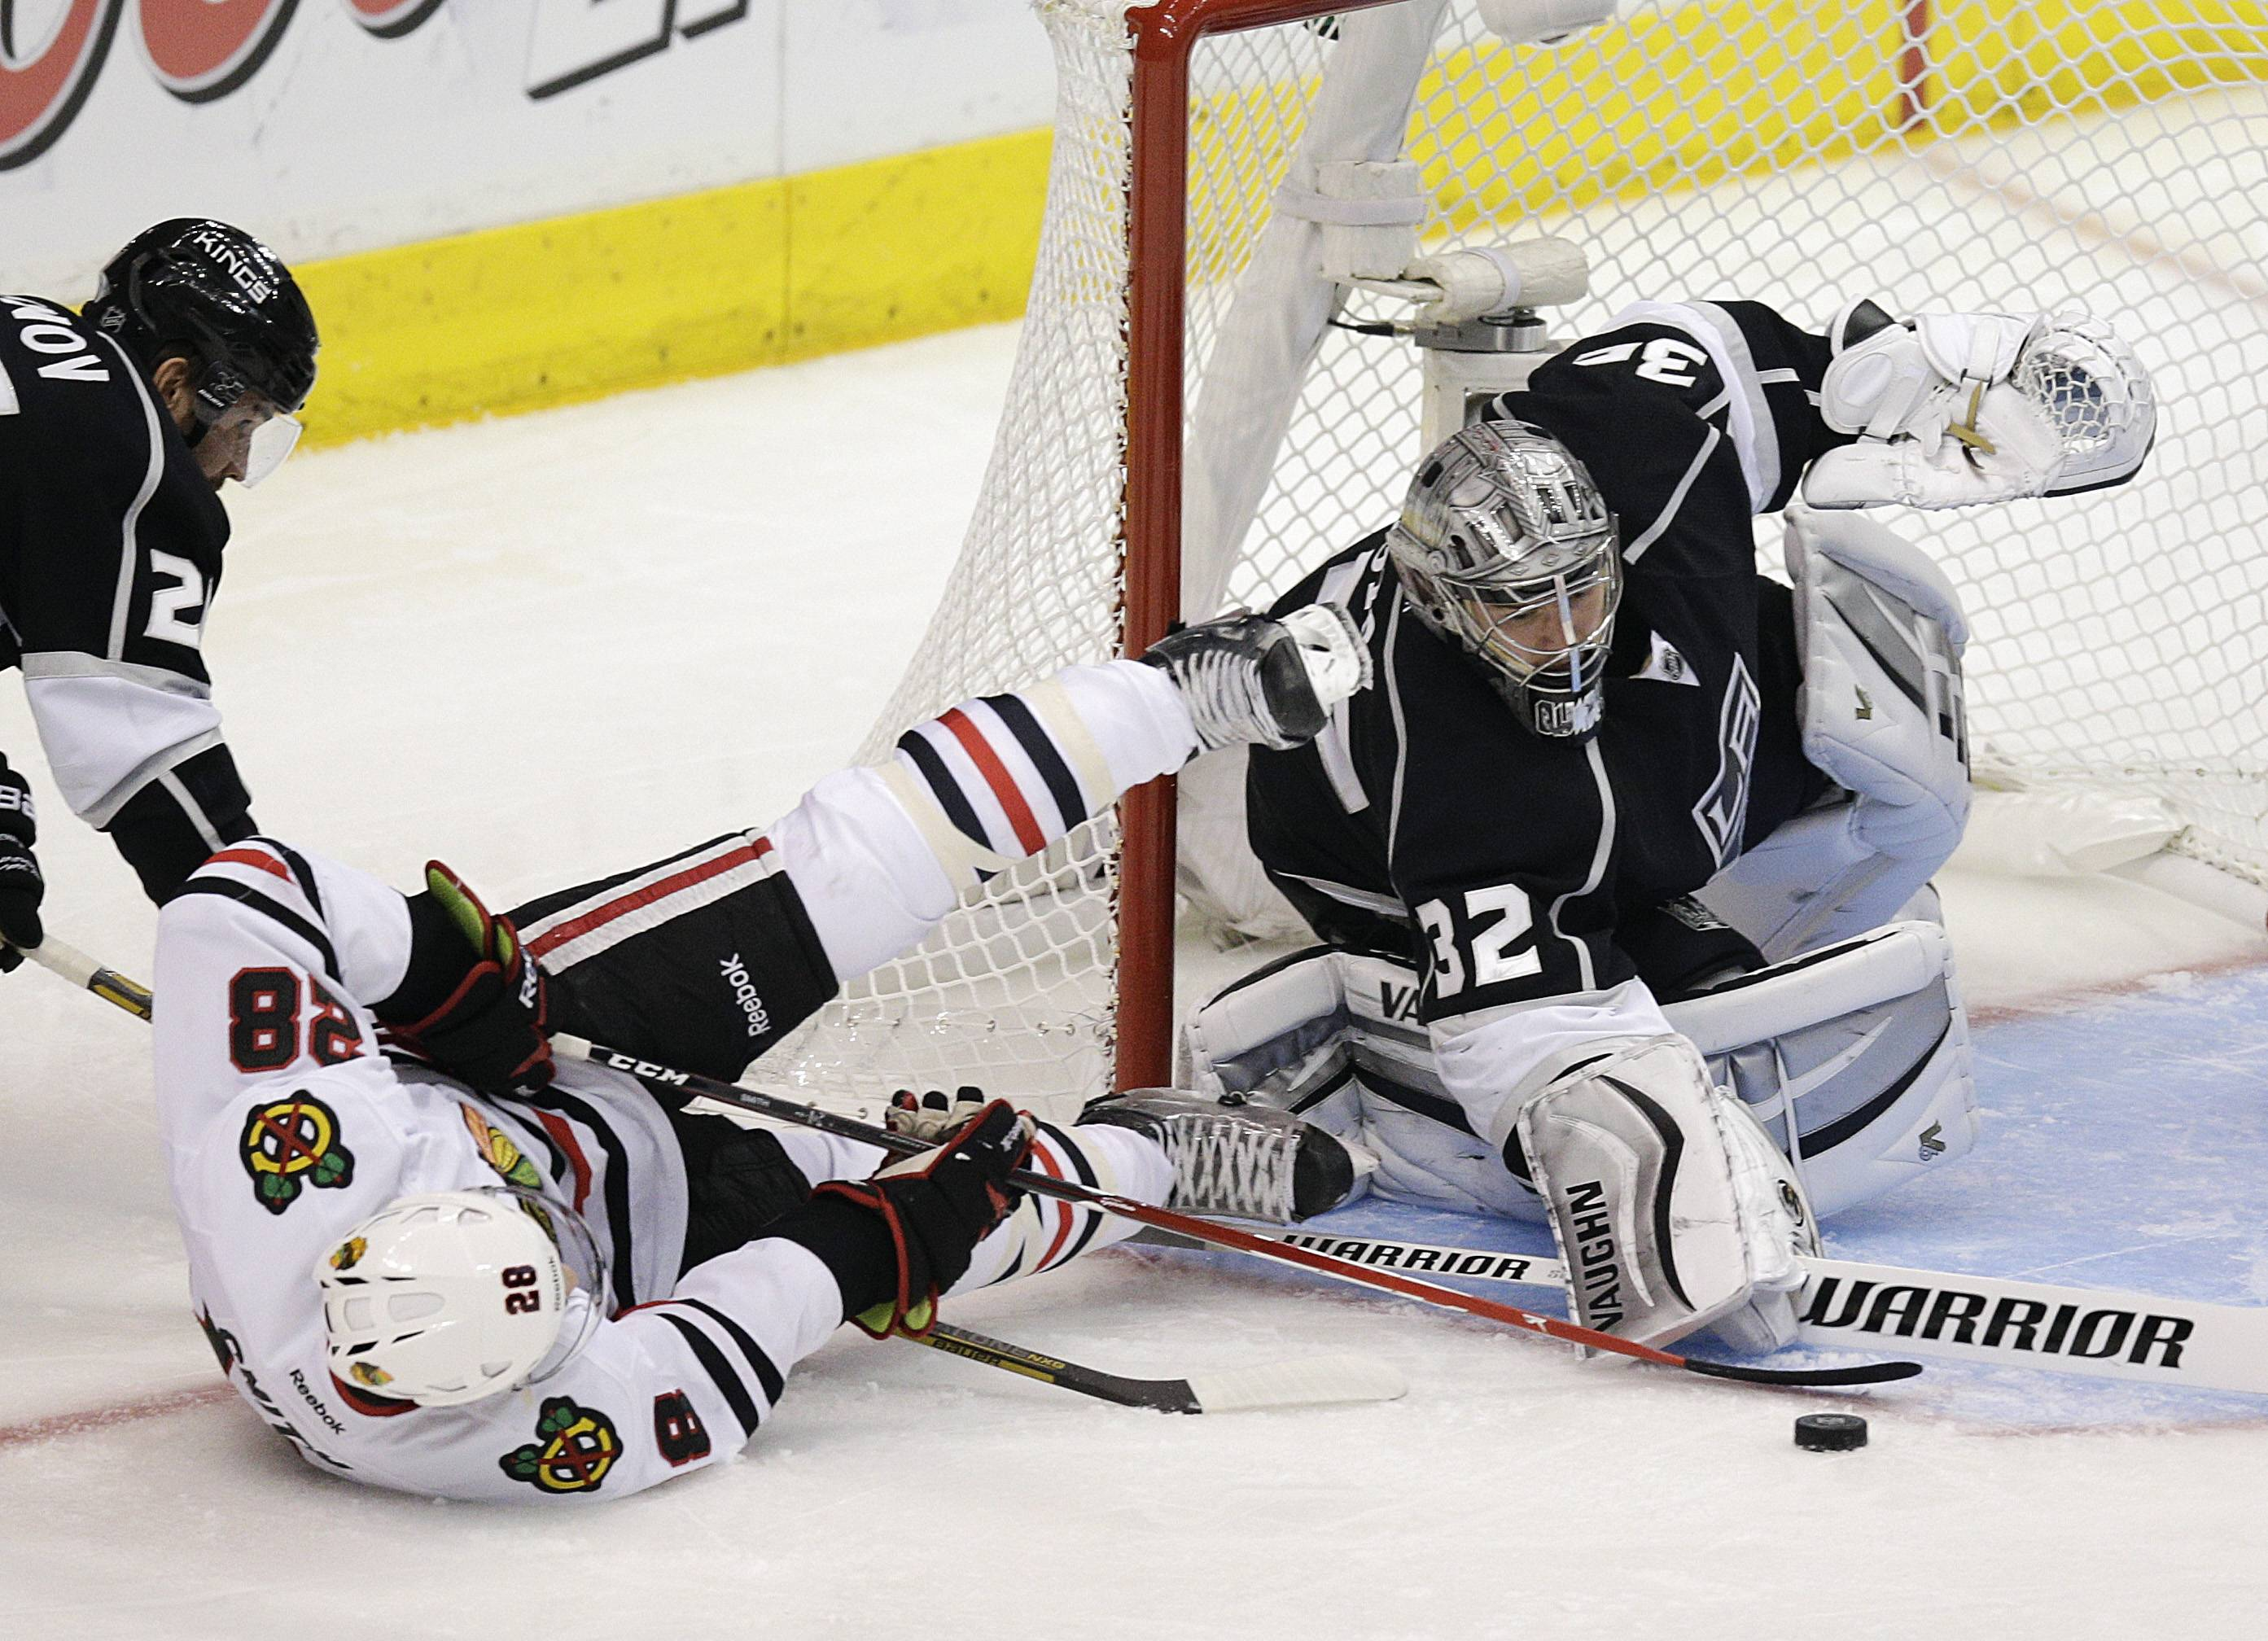 Los Angeles Kings goalie Jonathan Quick, right, stops a shot by Chicago Blackhawks' Ben Smith during the second period of Game 4 Monday in Los Angeles.